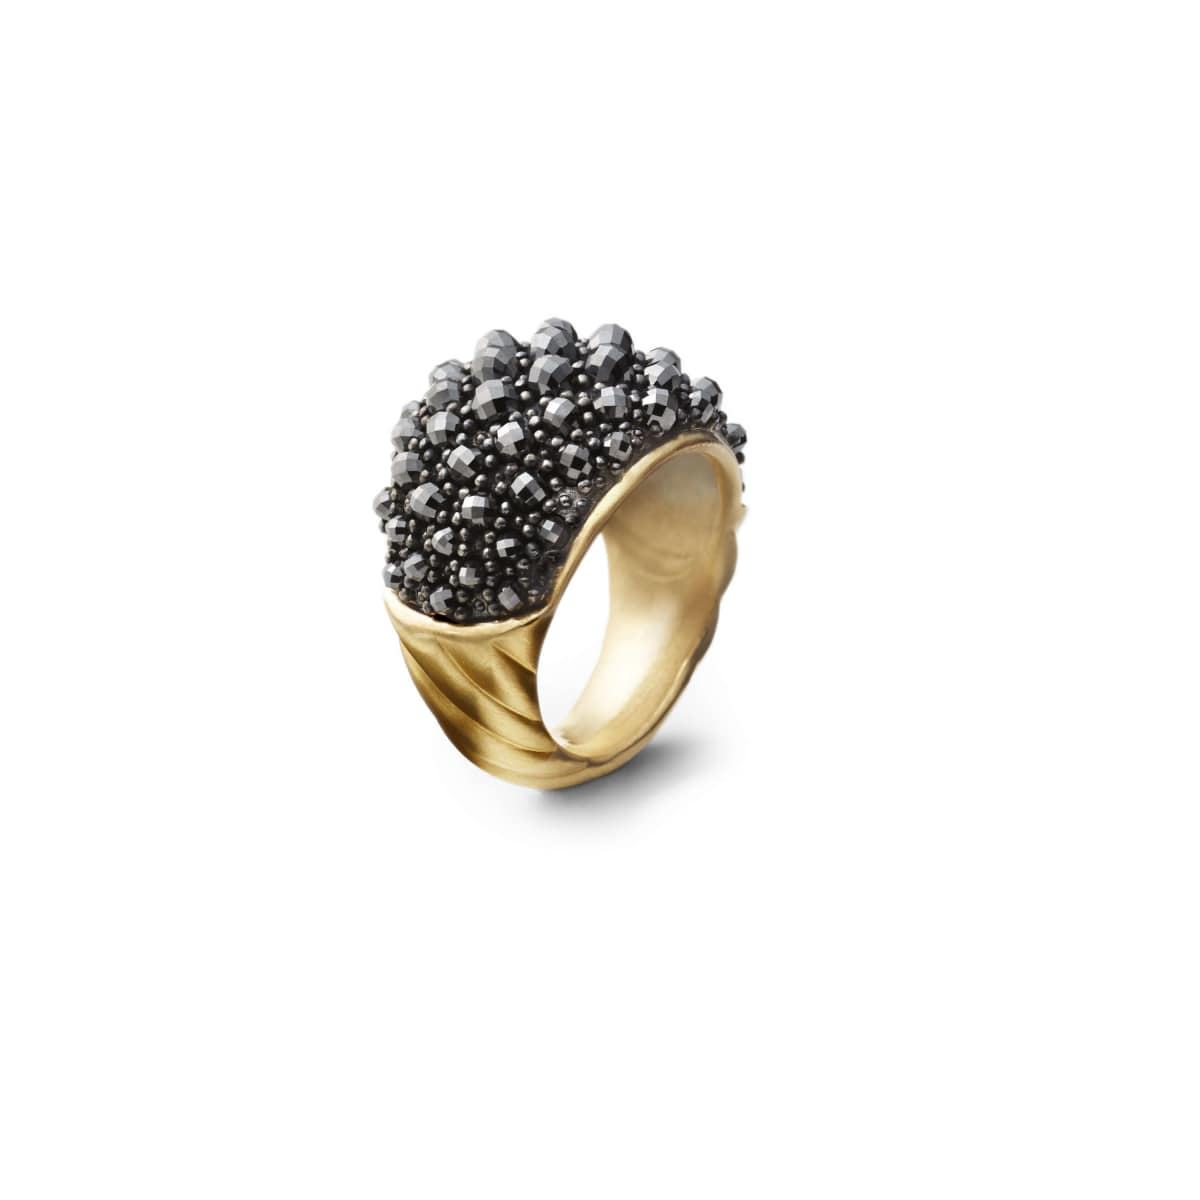 Osetra ring by David Yurman